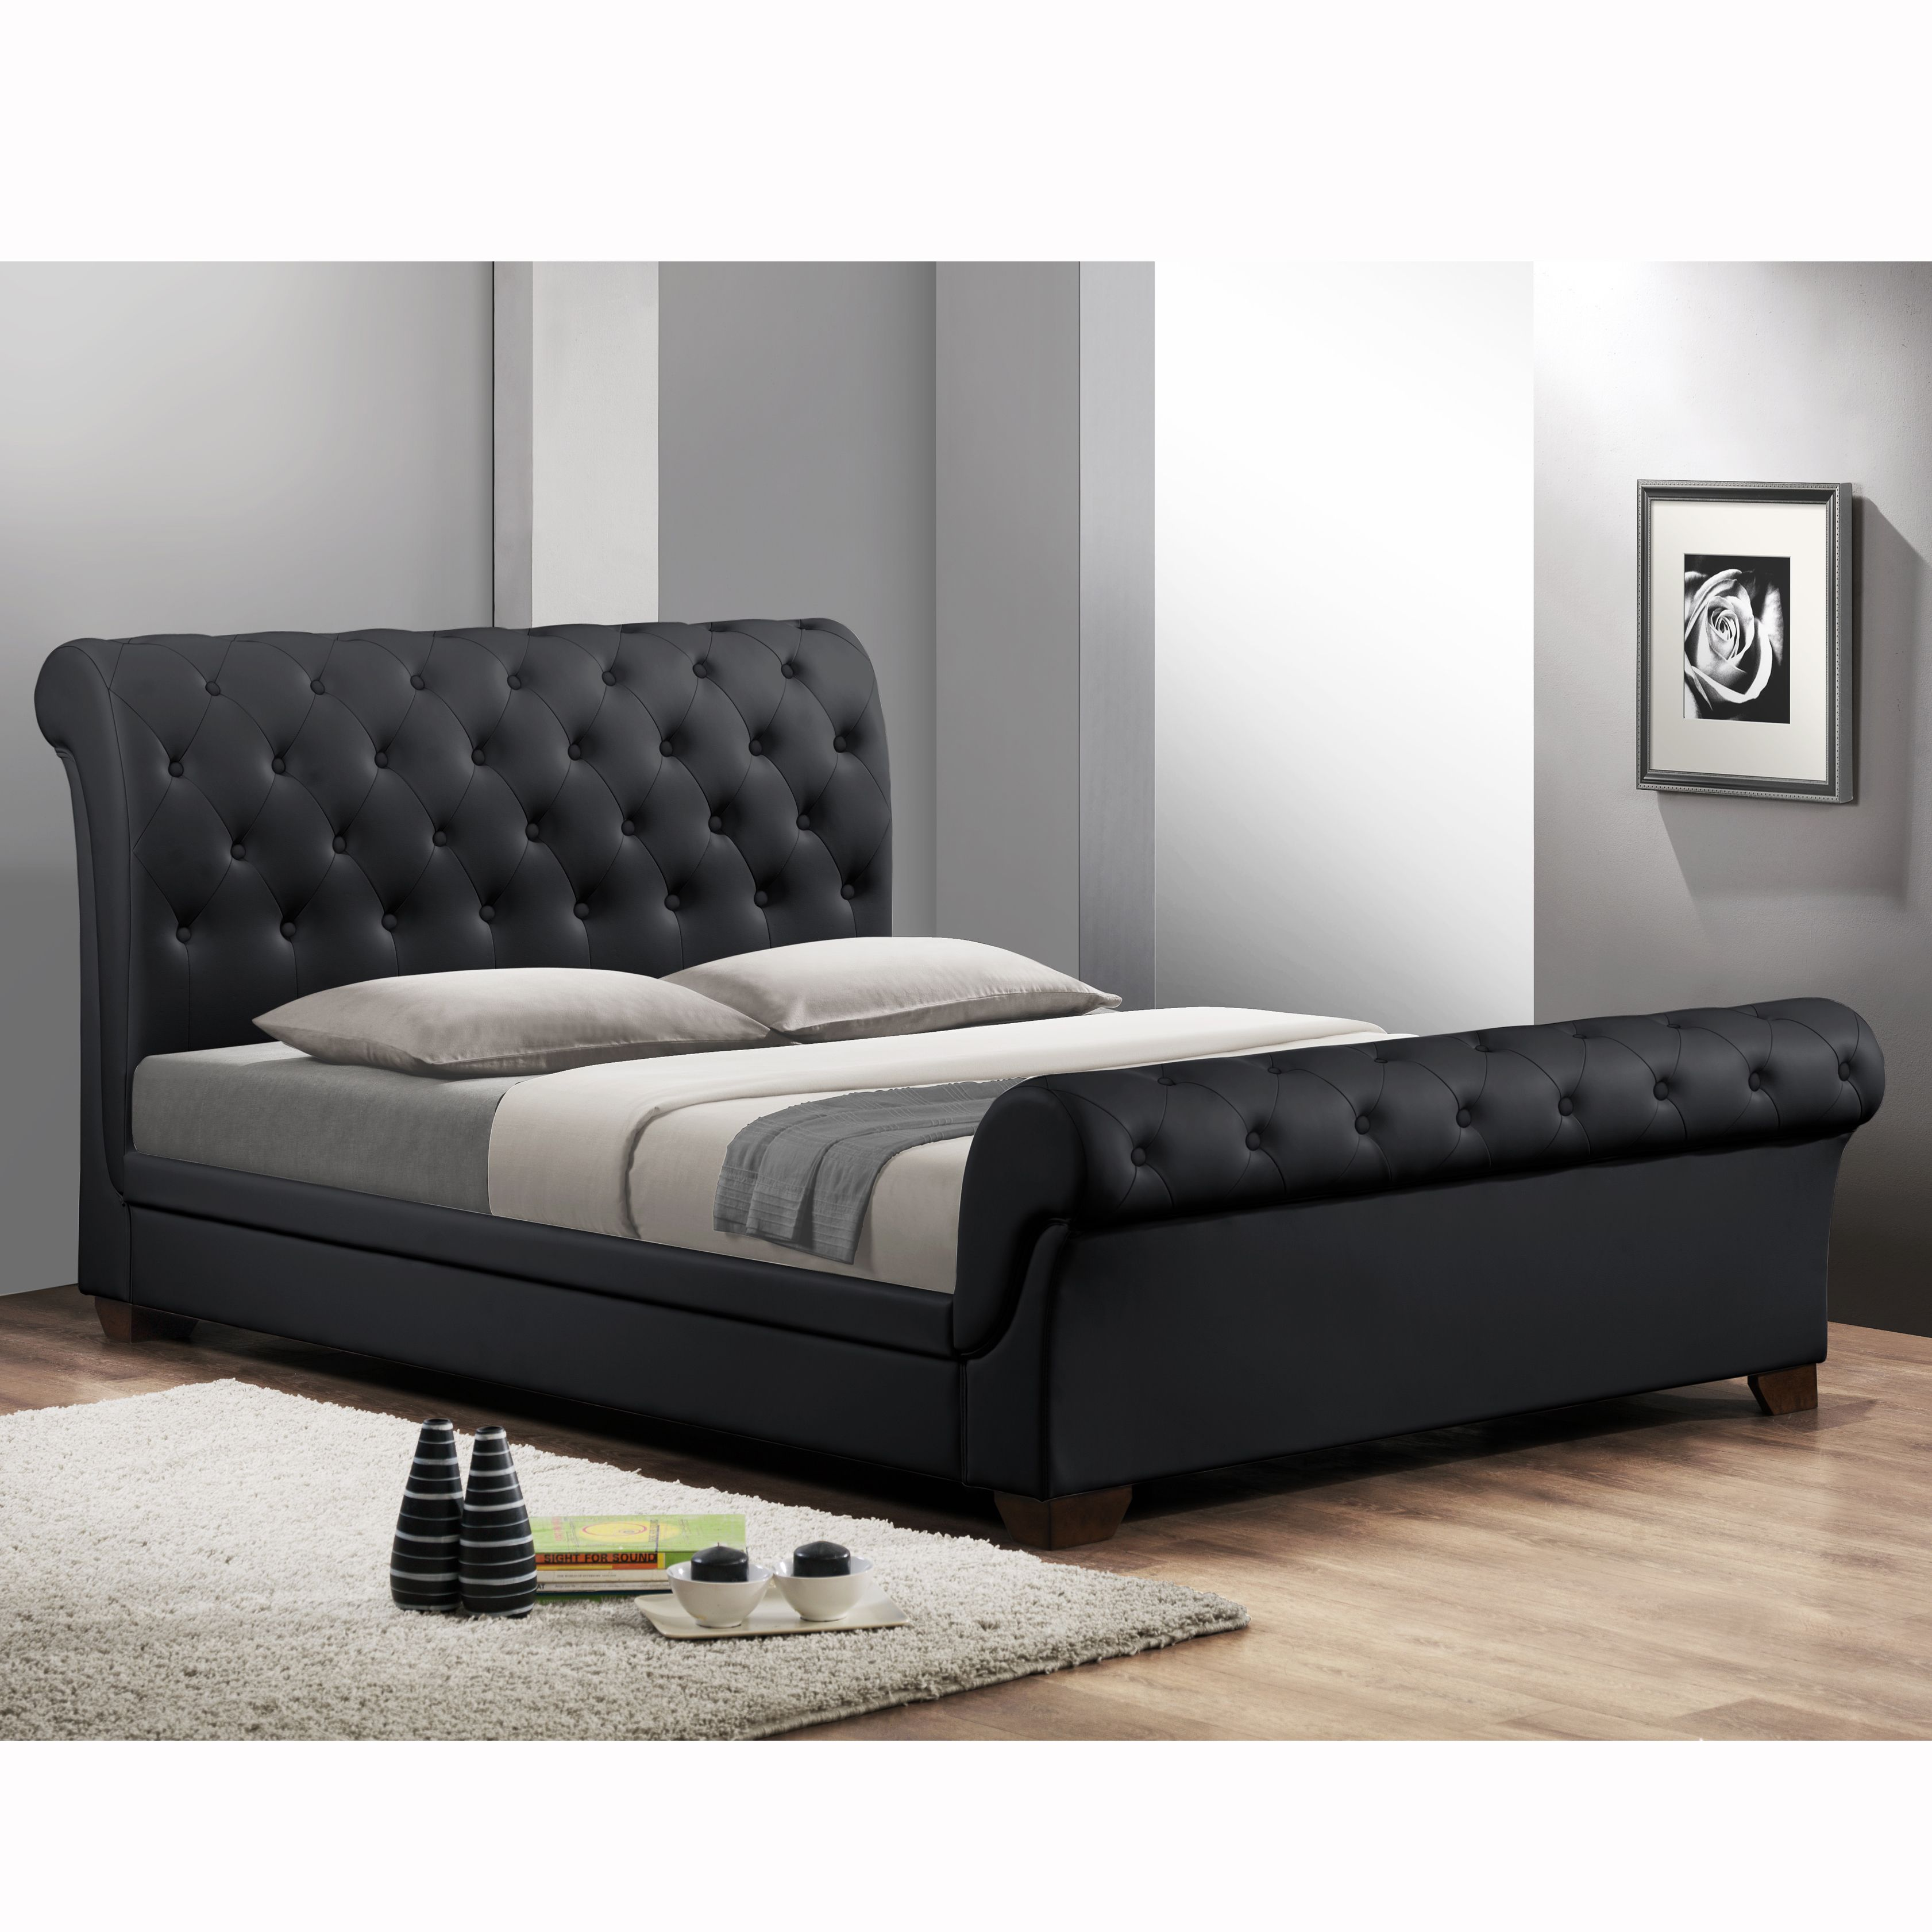 black upholstered sleigh bed. The Queen Size Leighlin Designer Sleigh Bed Is Made With Buttery Smooth Matte Black Faux Leather And Underlying Foam Padding. An Engineered Wood Fr\u2026 Upholstered D